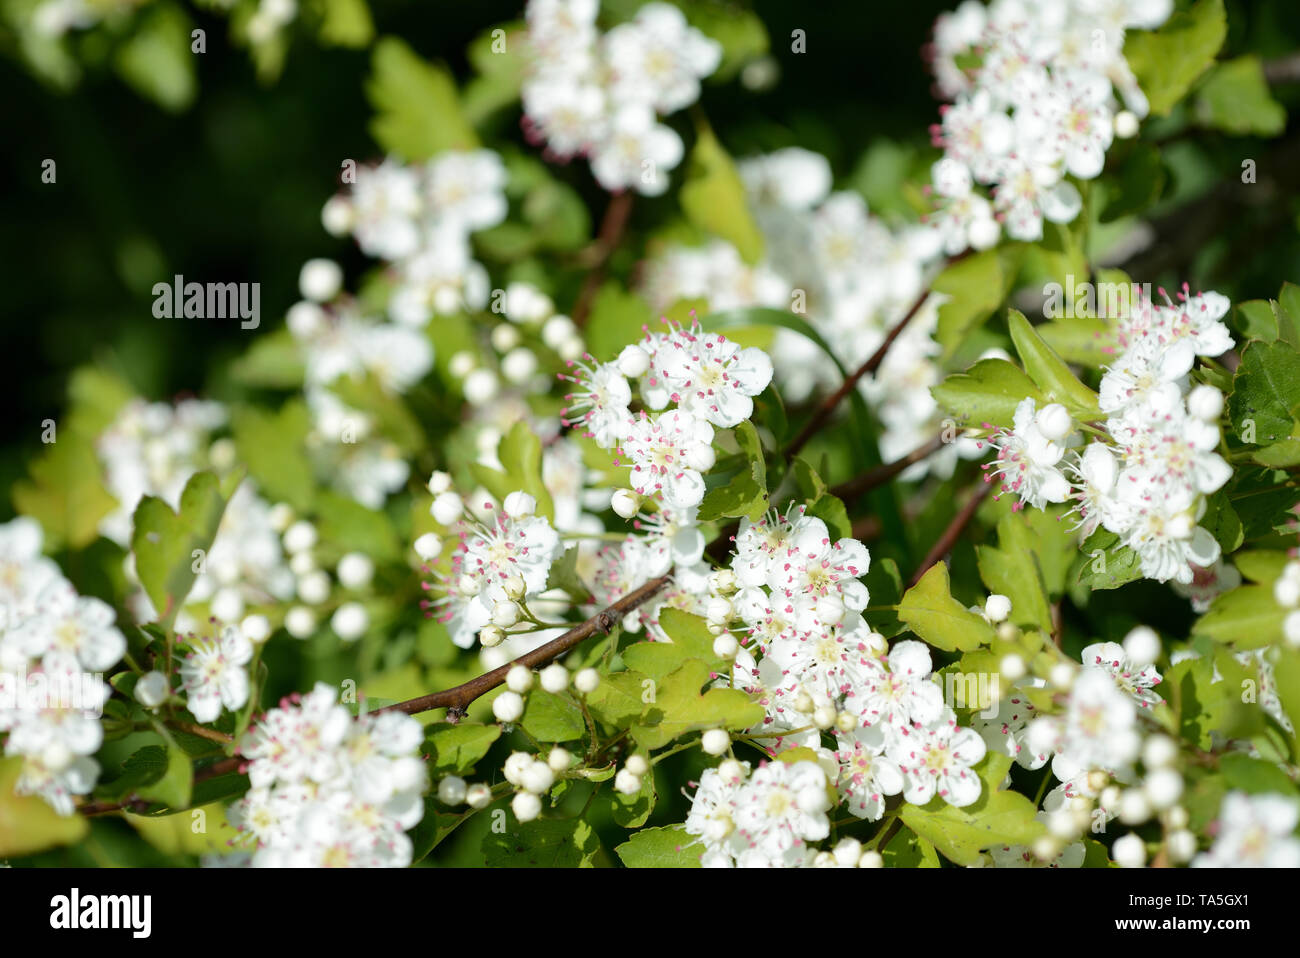 Beautiful white flowers of hawthorn on a sunny day close up - Stock Image